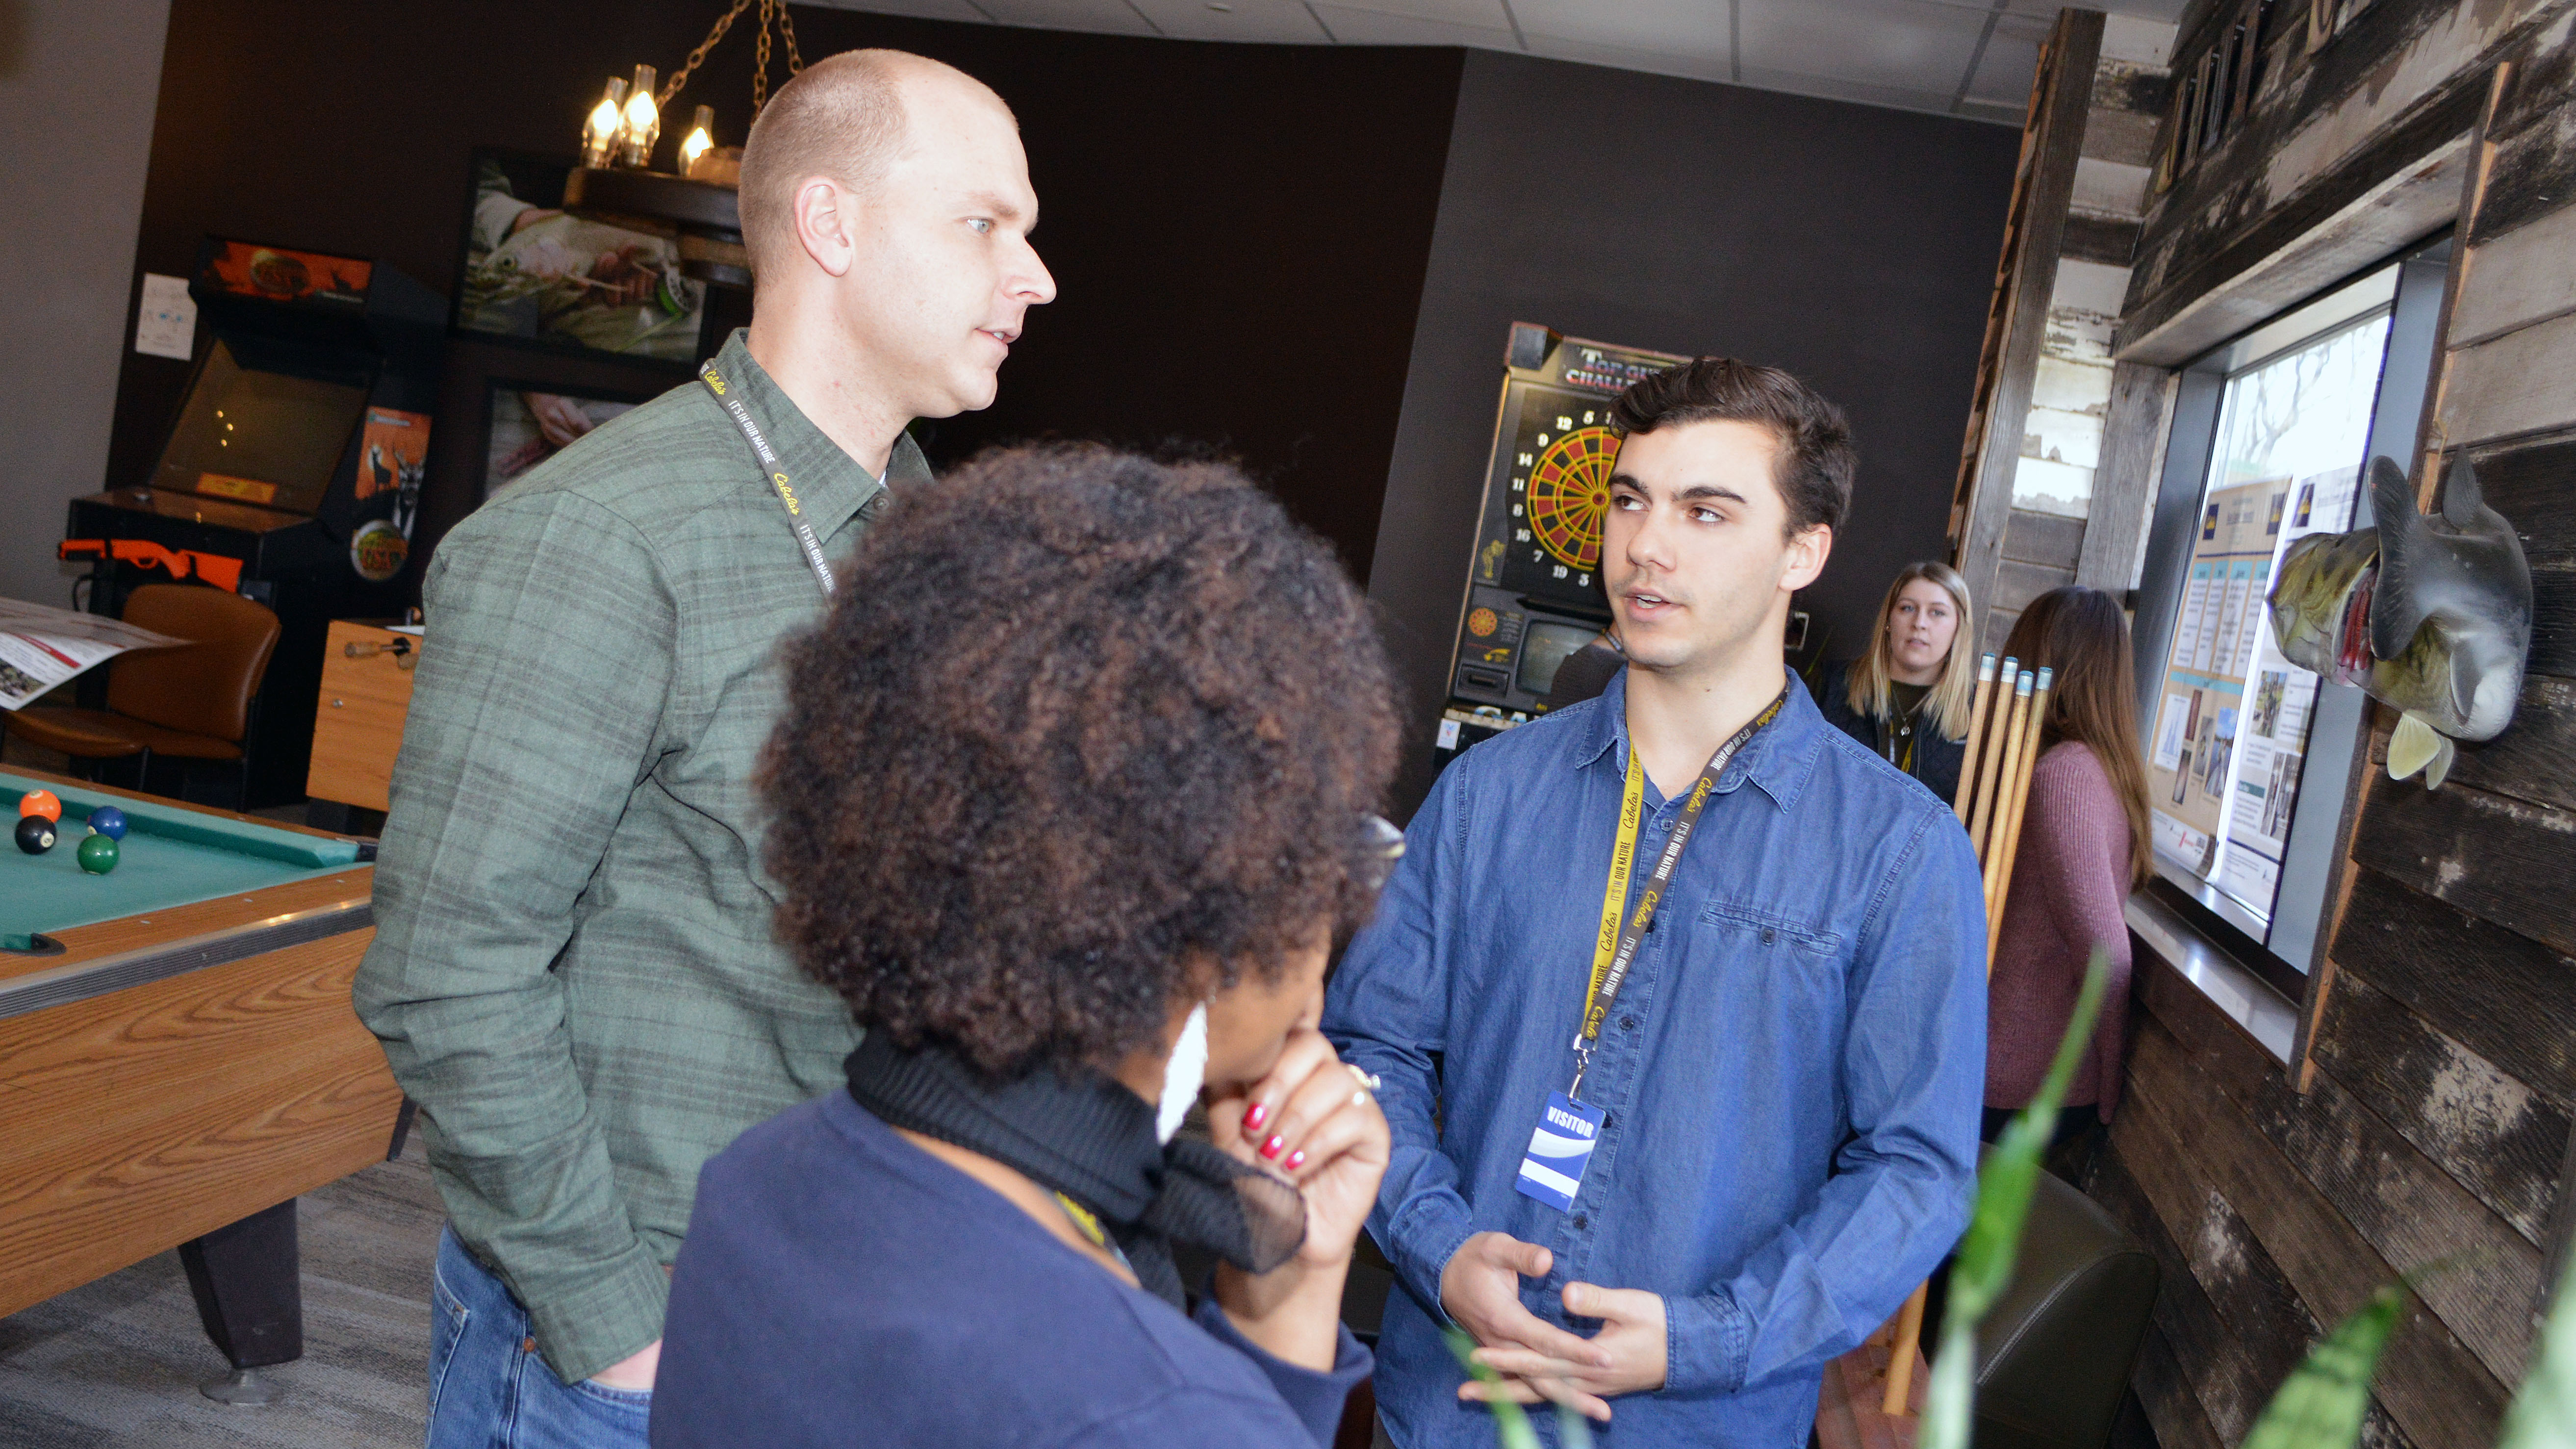 Mike True presents his work to Cabela's staff during the 2018 Cabela's Apprenticeship Poster Session at the outdoor store's headquarters in Lincoln. | Shawna Richter-Ryerson, SNR